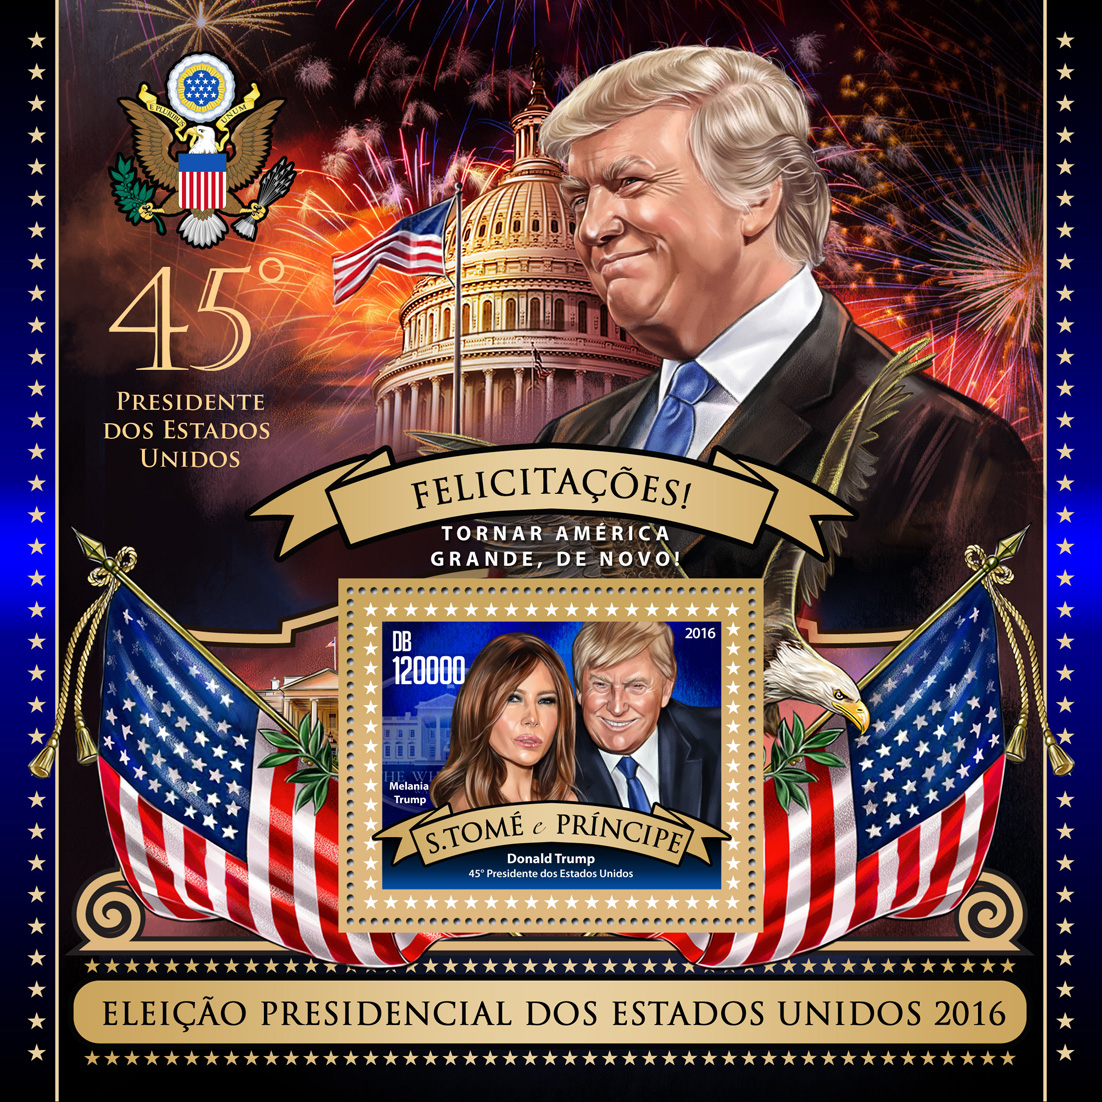 Donald Trump - Issue of Sao Tome and Principe postage stamps